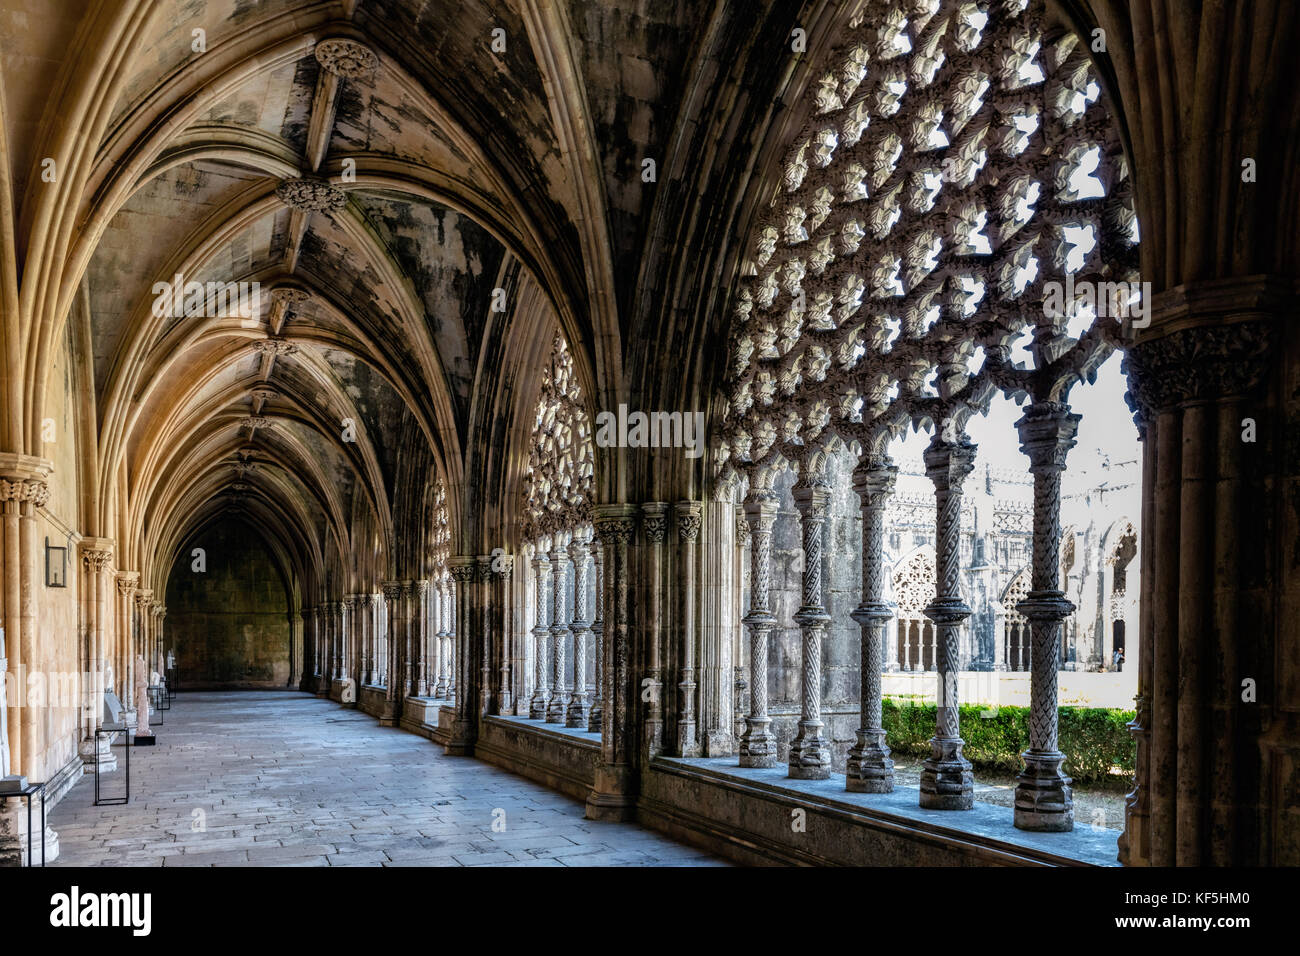 King John I Cloisters of the Batalha Monastery, a prime example of Portuguese Gothic architecture, UNESCO World - Stock Image